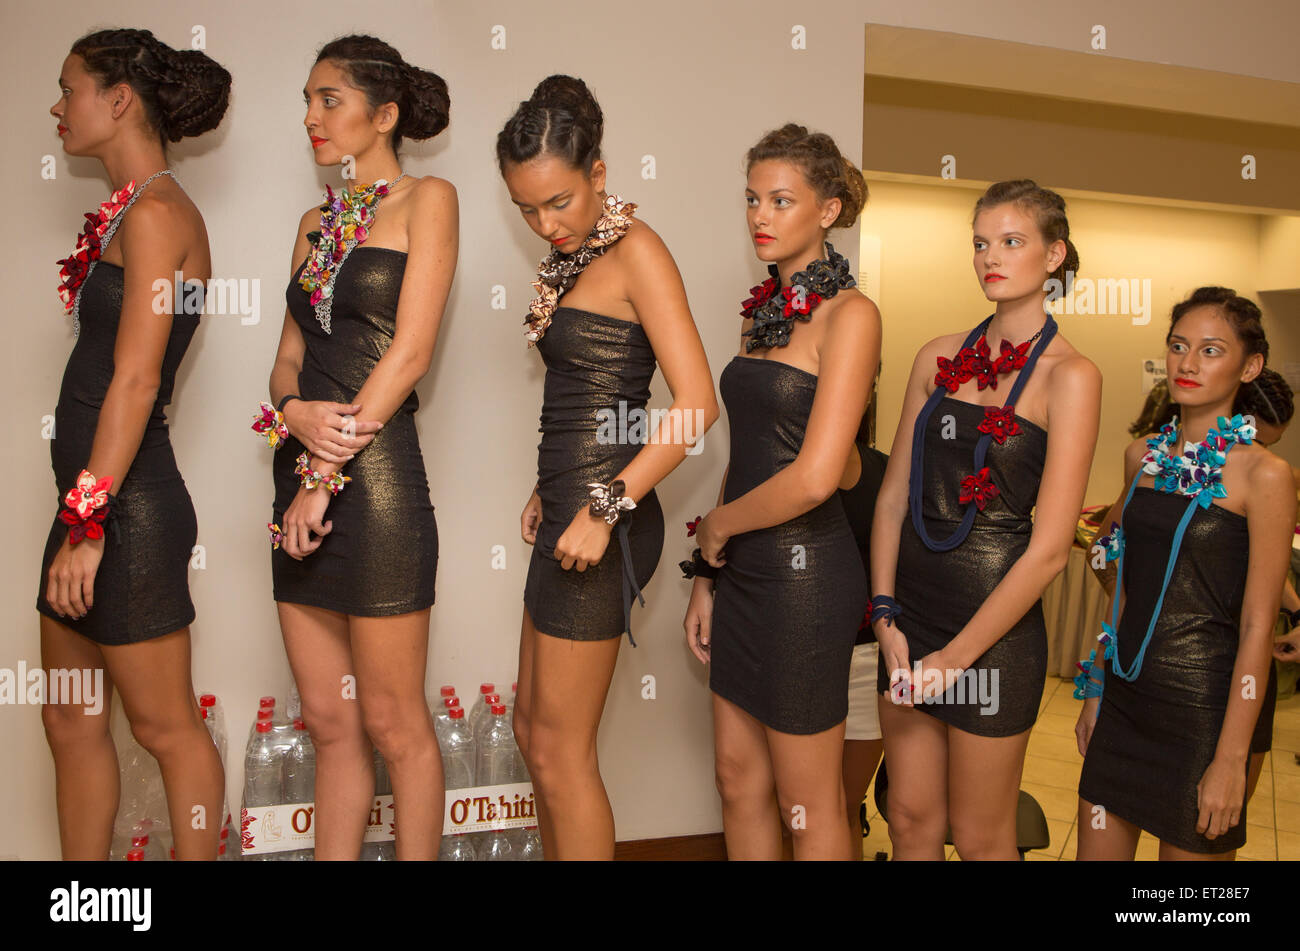 Papeete, French Polynesia. 10th June, 2015. Models backstage waiting to hit the catwalk for the first day of Tahiti - Stock Image